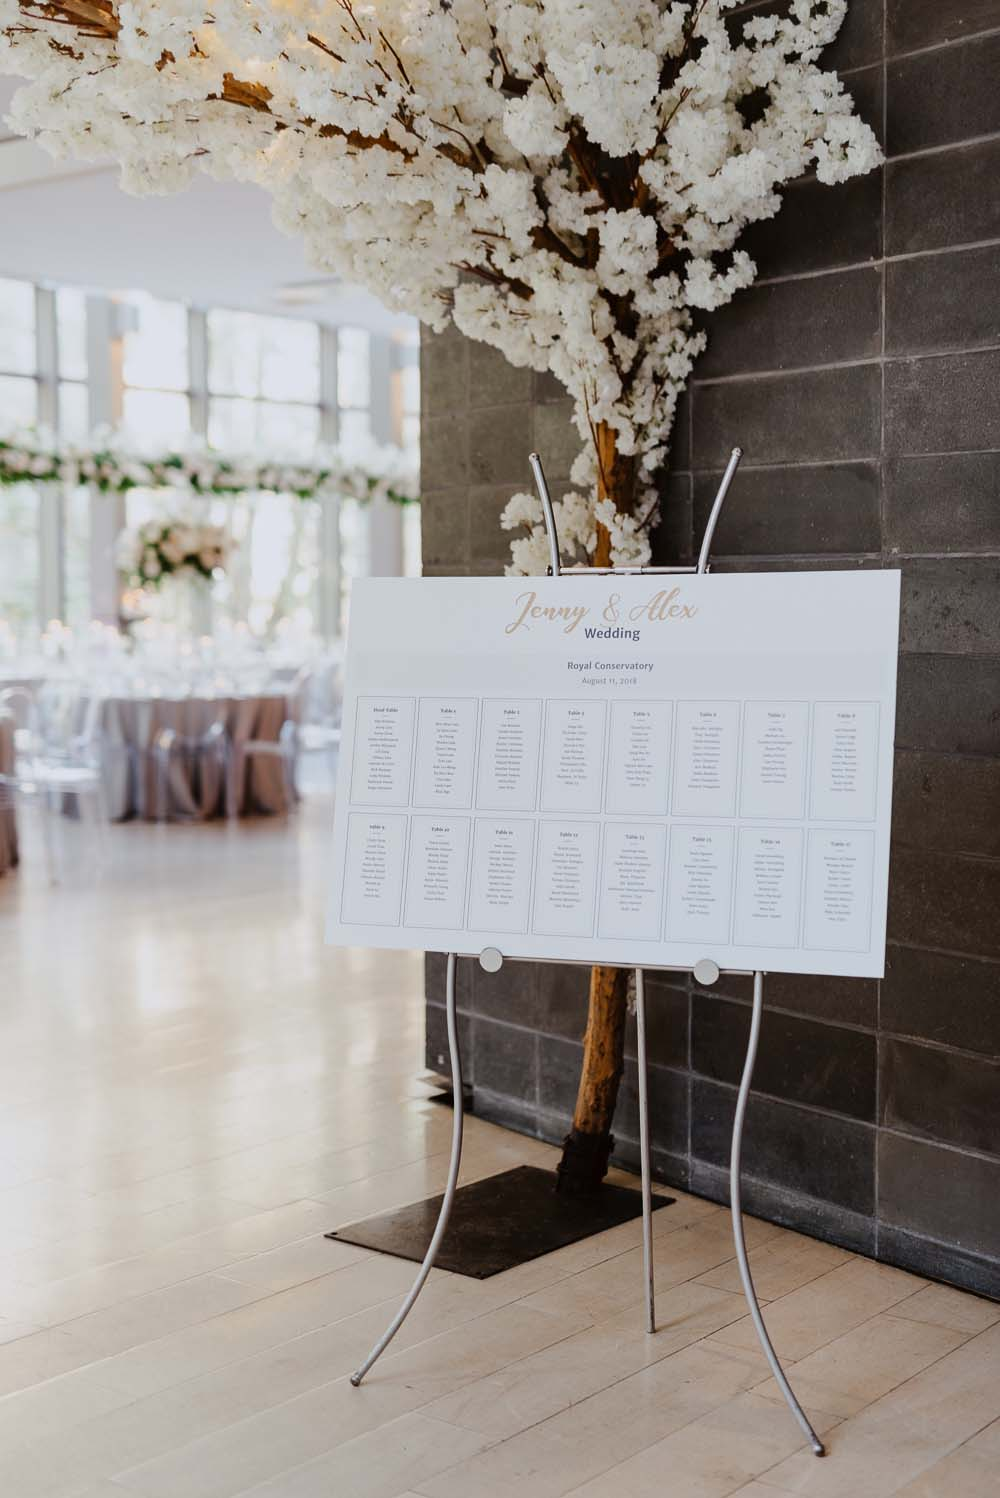 An Opulent Wedding At The Royal Conservatory Of Music - stationery